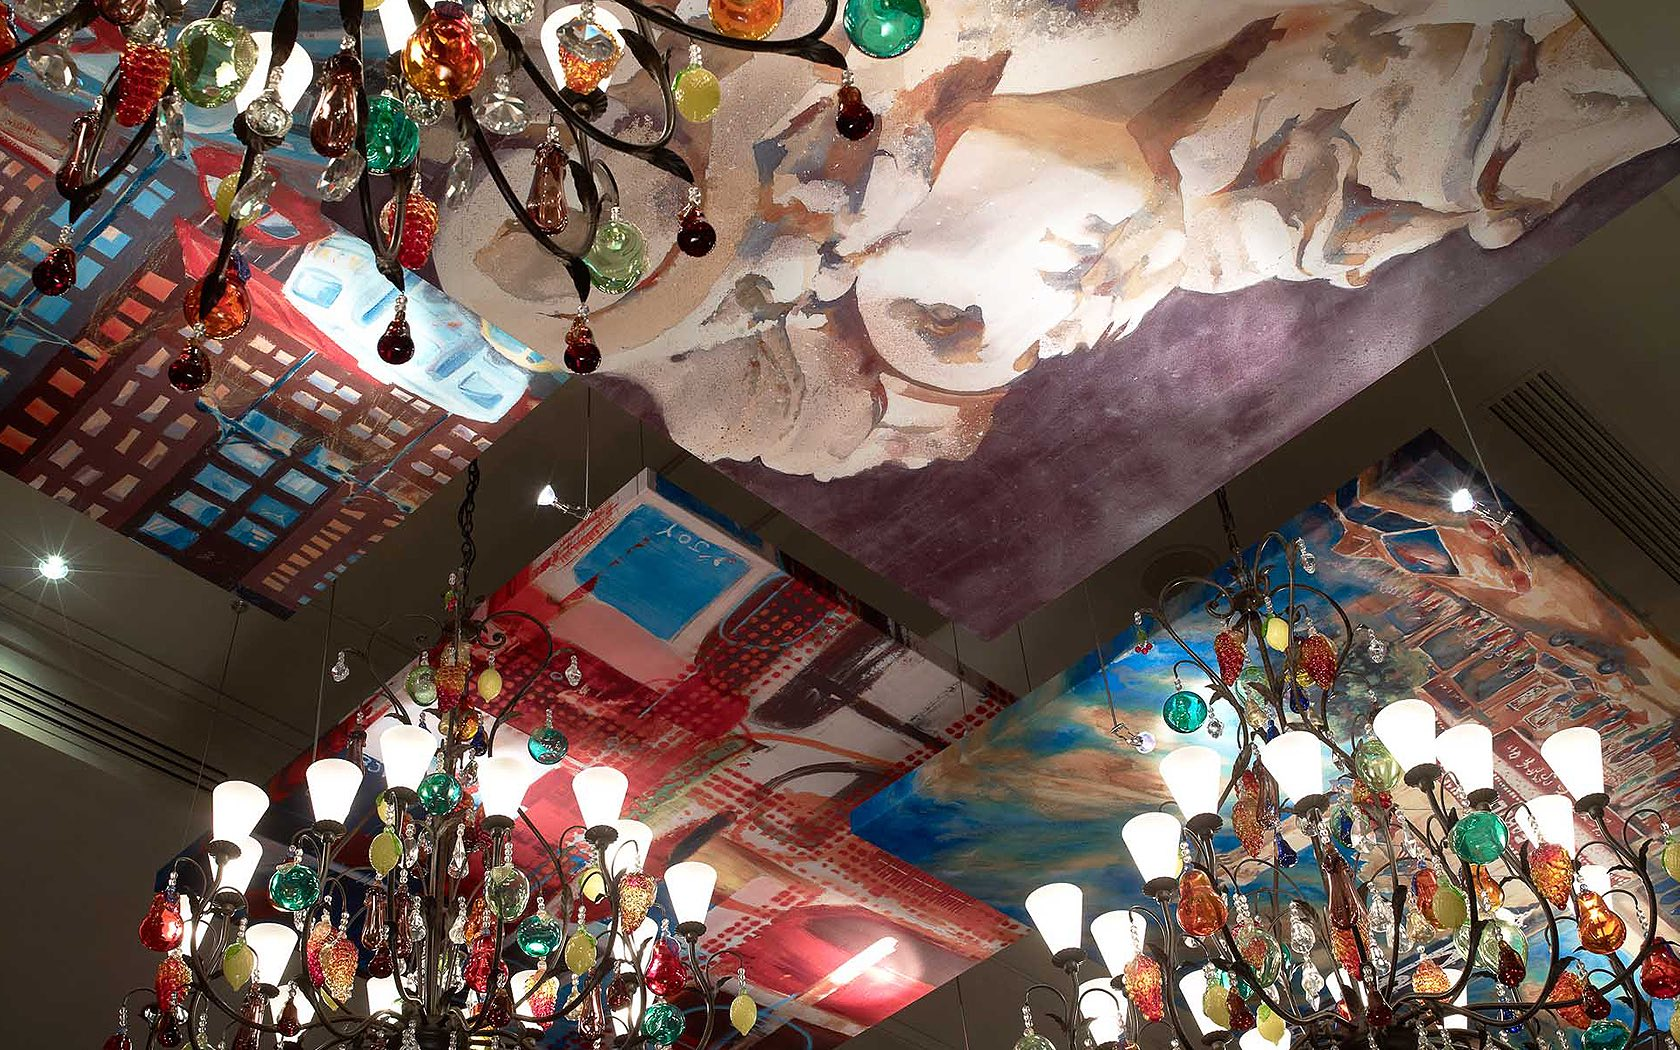 restaurant ceiling with canvas art work and colorful glass lighting fixtures